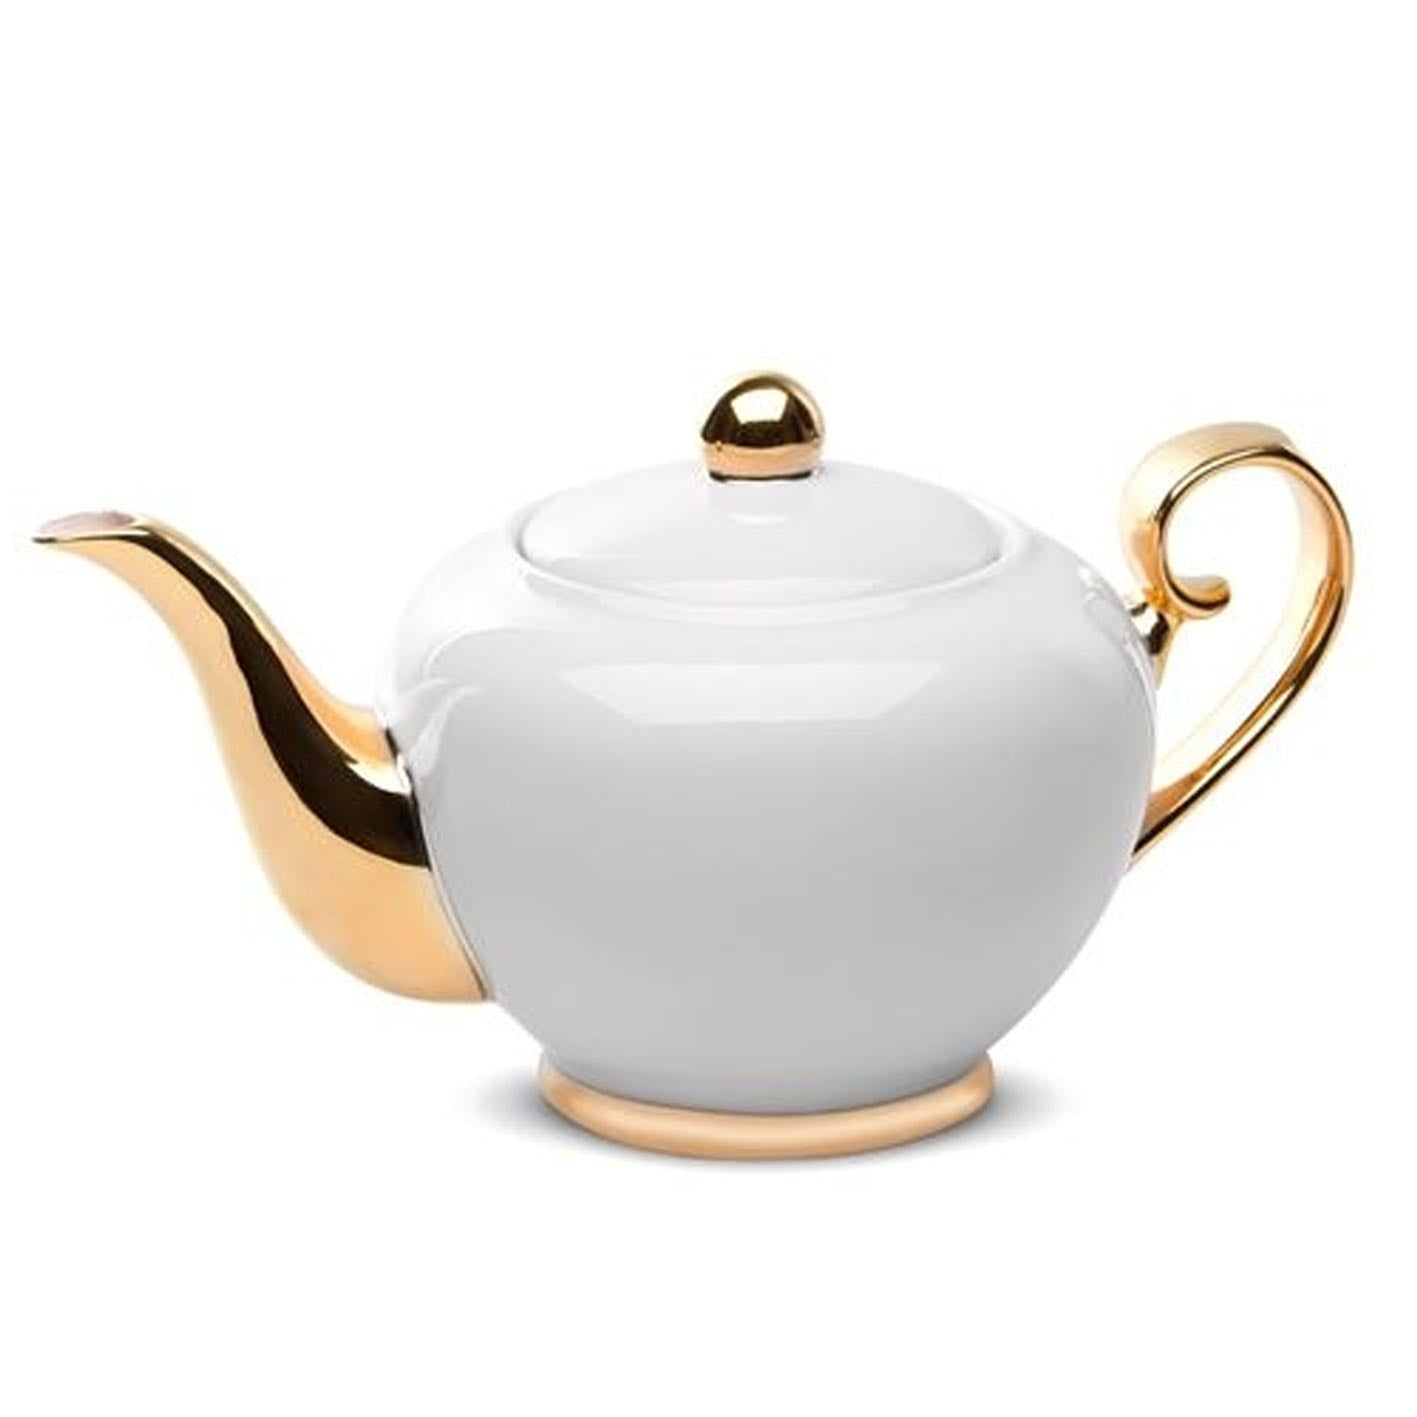 Cristina Re Signature Teapot